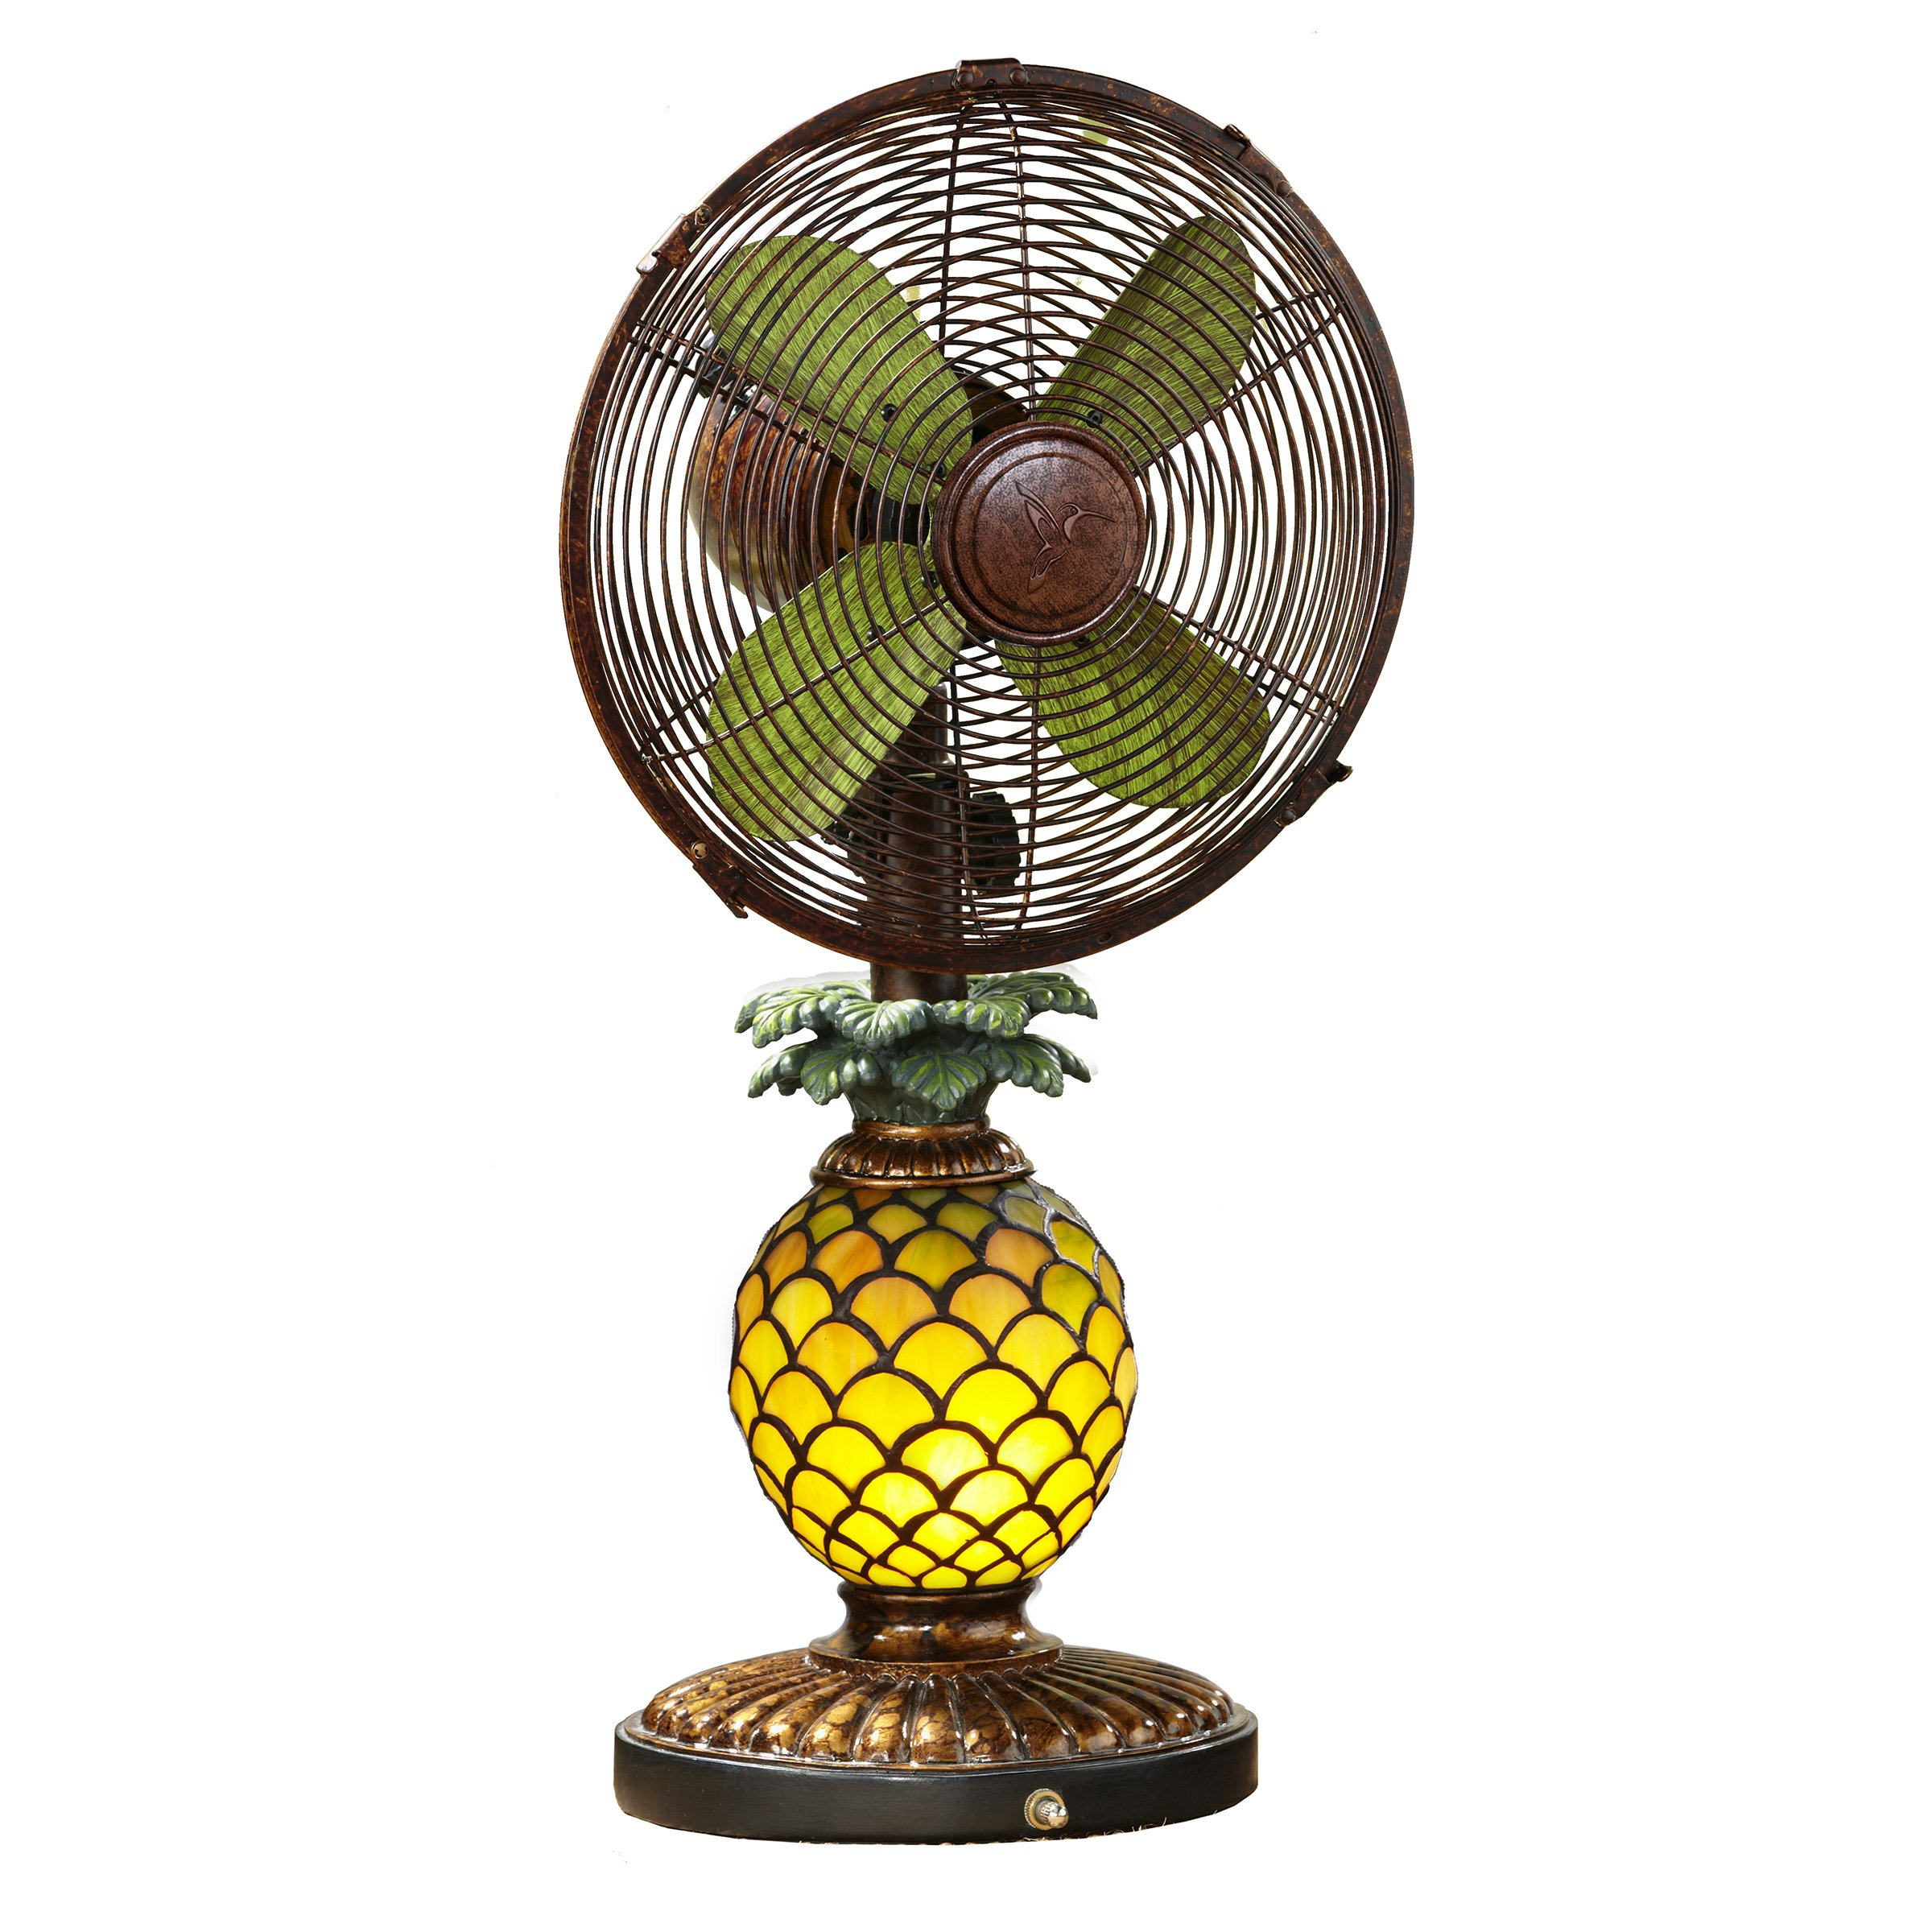 DecoBREEZE Oscillating Table Fan and Tiffany Style Table Lamp, 3 Speed Circulator Fan, 10 In, Pineapple by Deco Breeze